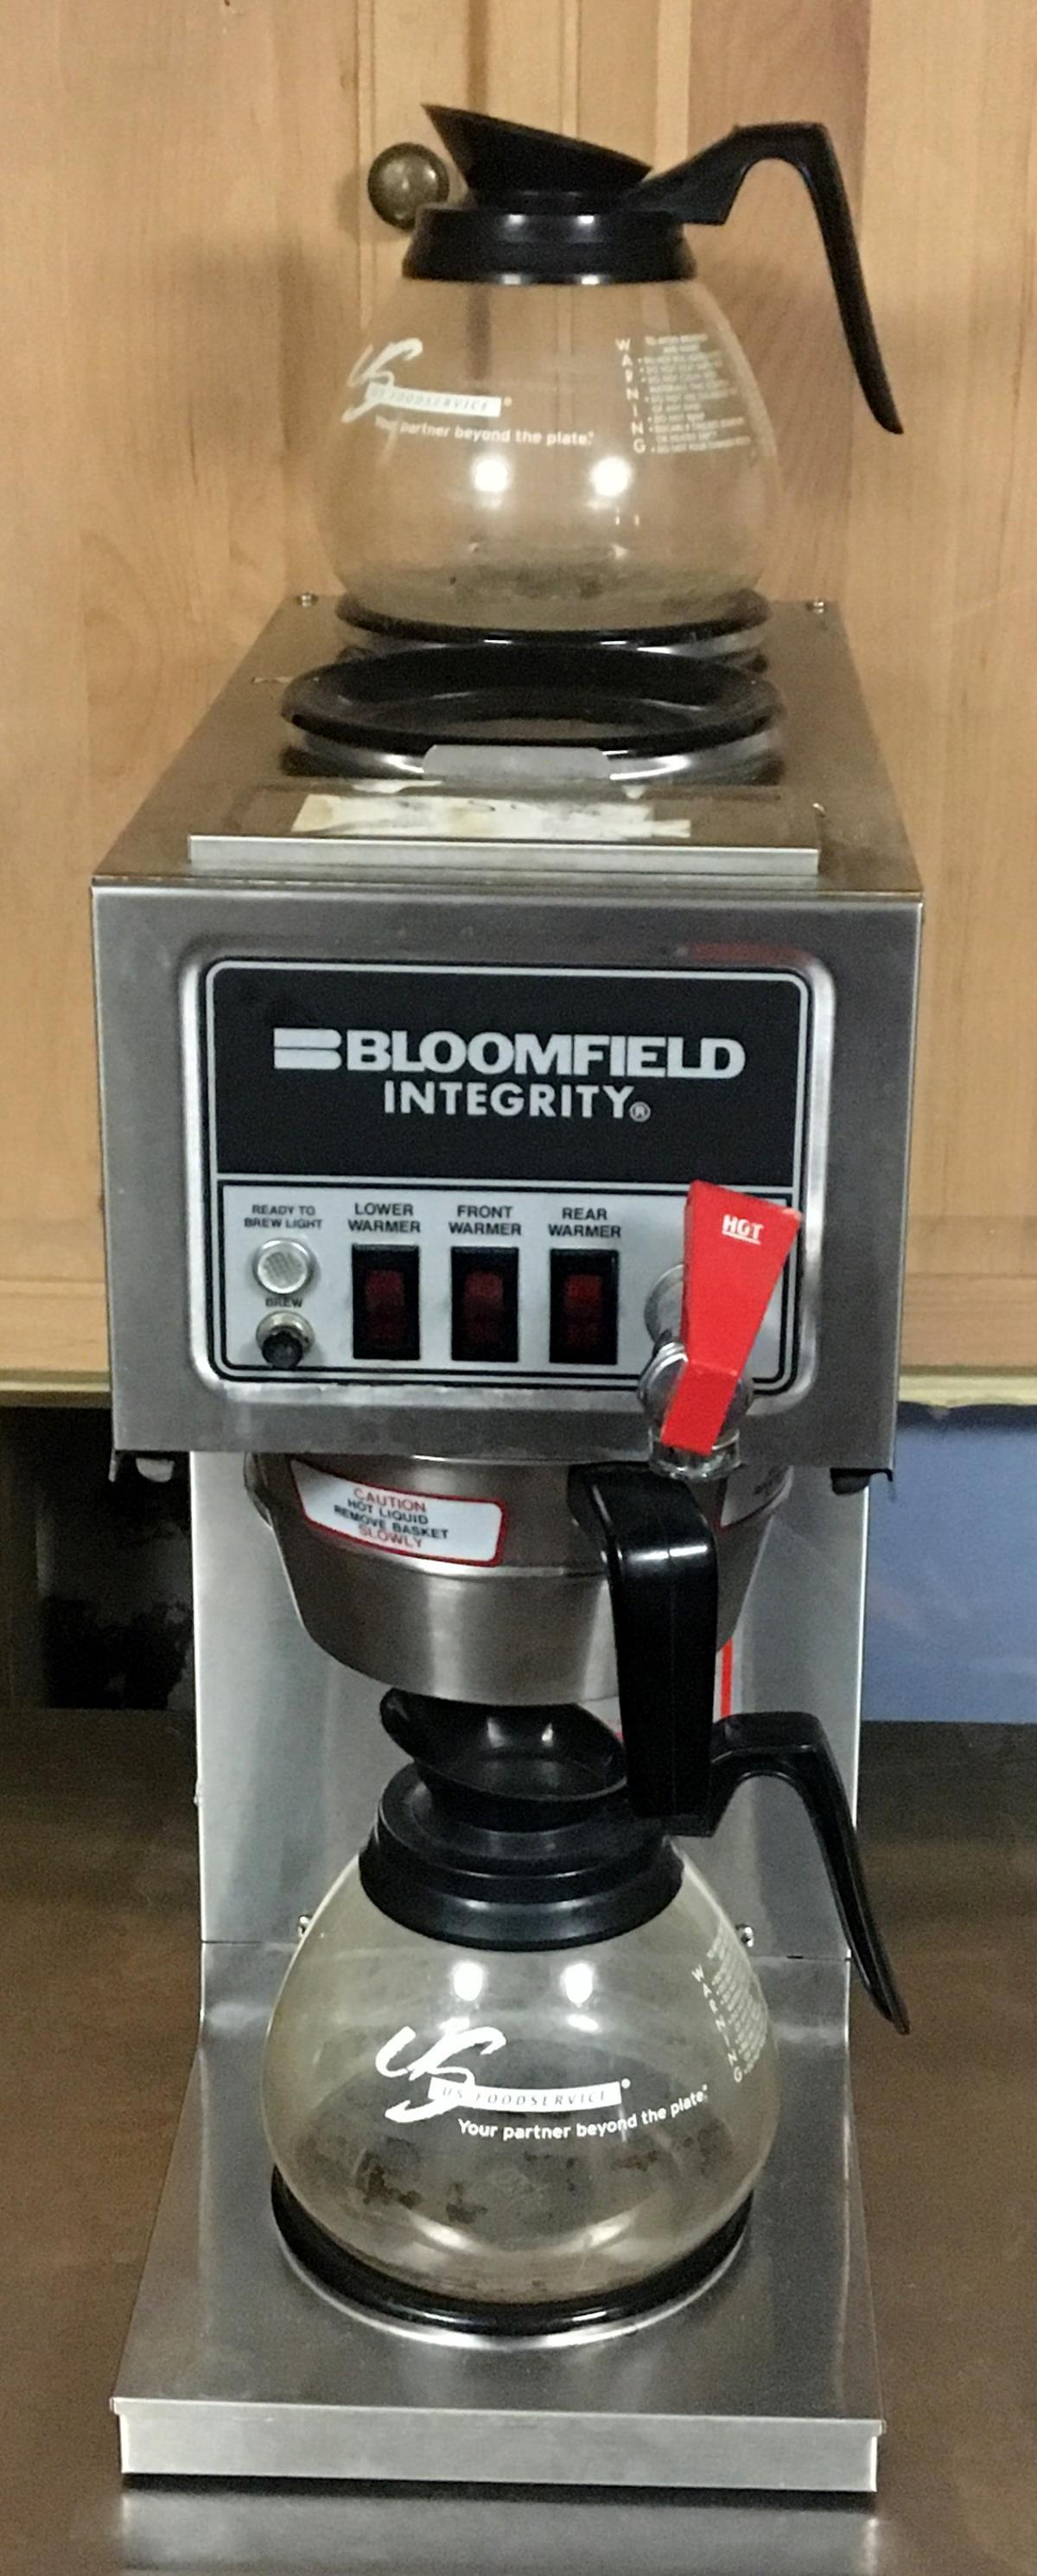 Bloomfield 9016 Integrity 3-Warmer In-Line Automatic Coffee Brewer